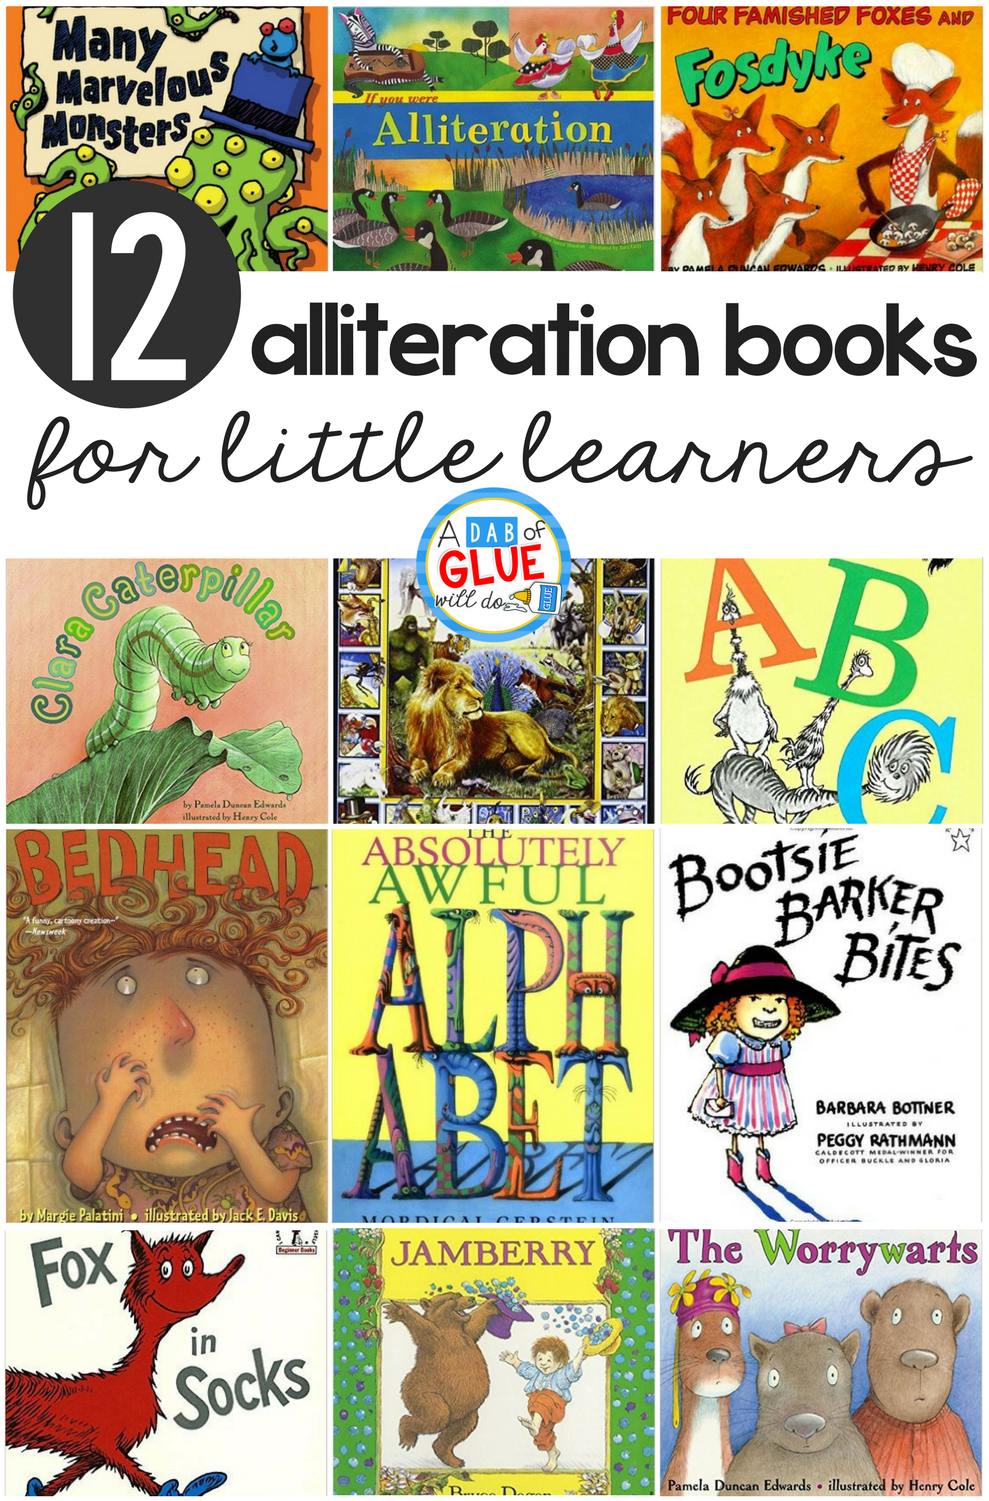 12 Alliteration Books For Little Learners Alliteration Books Alliteration Alliteration Activities [ 1501 x 989 Pixel ]